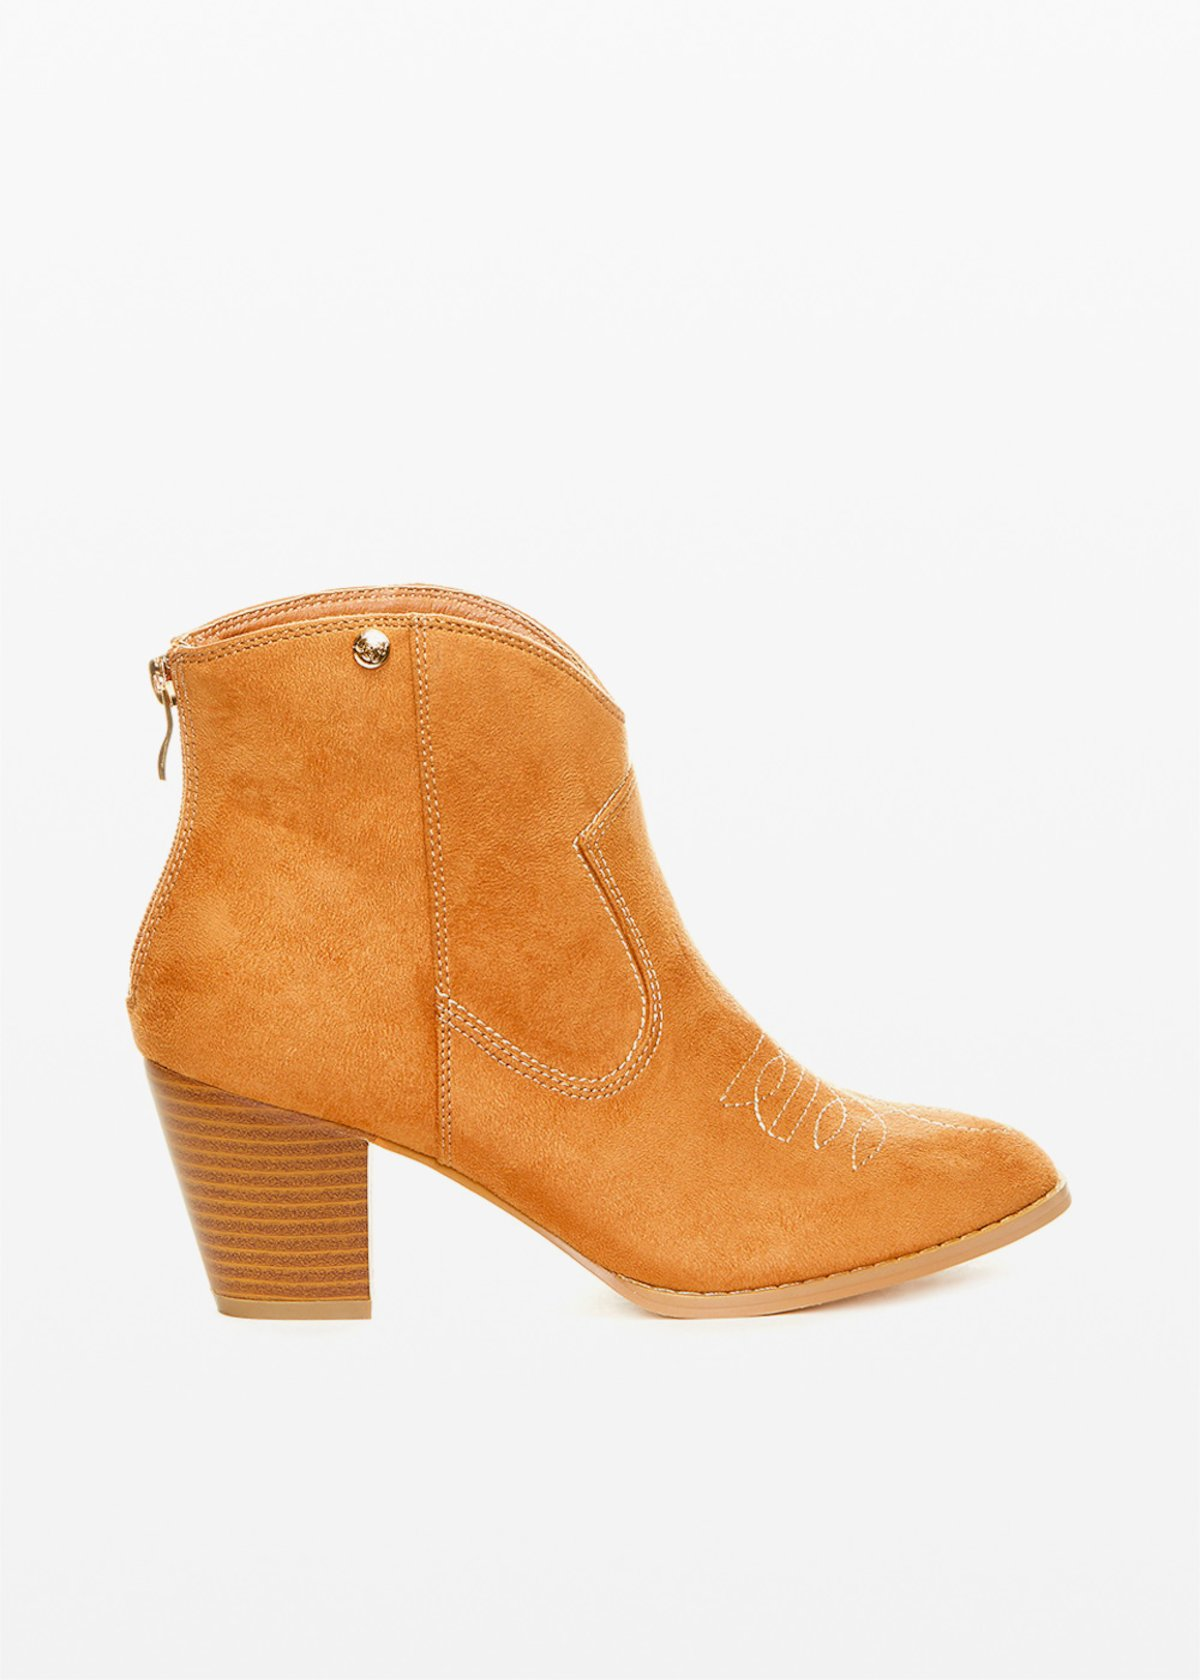 Faux suede Shila boots camperos model - Lion - Woman